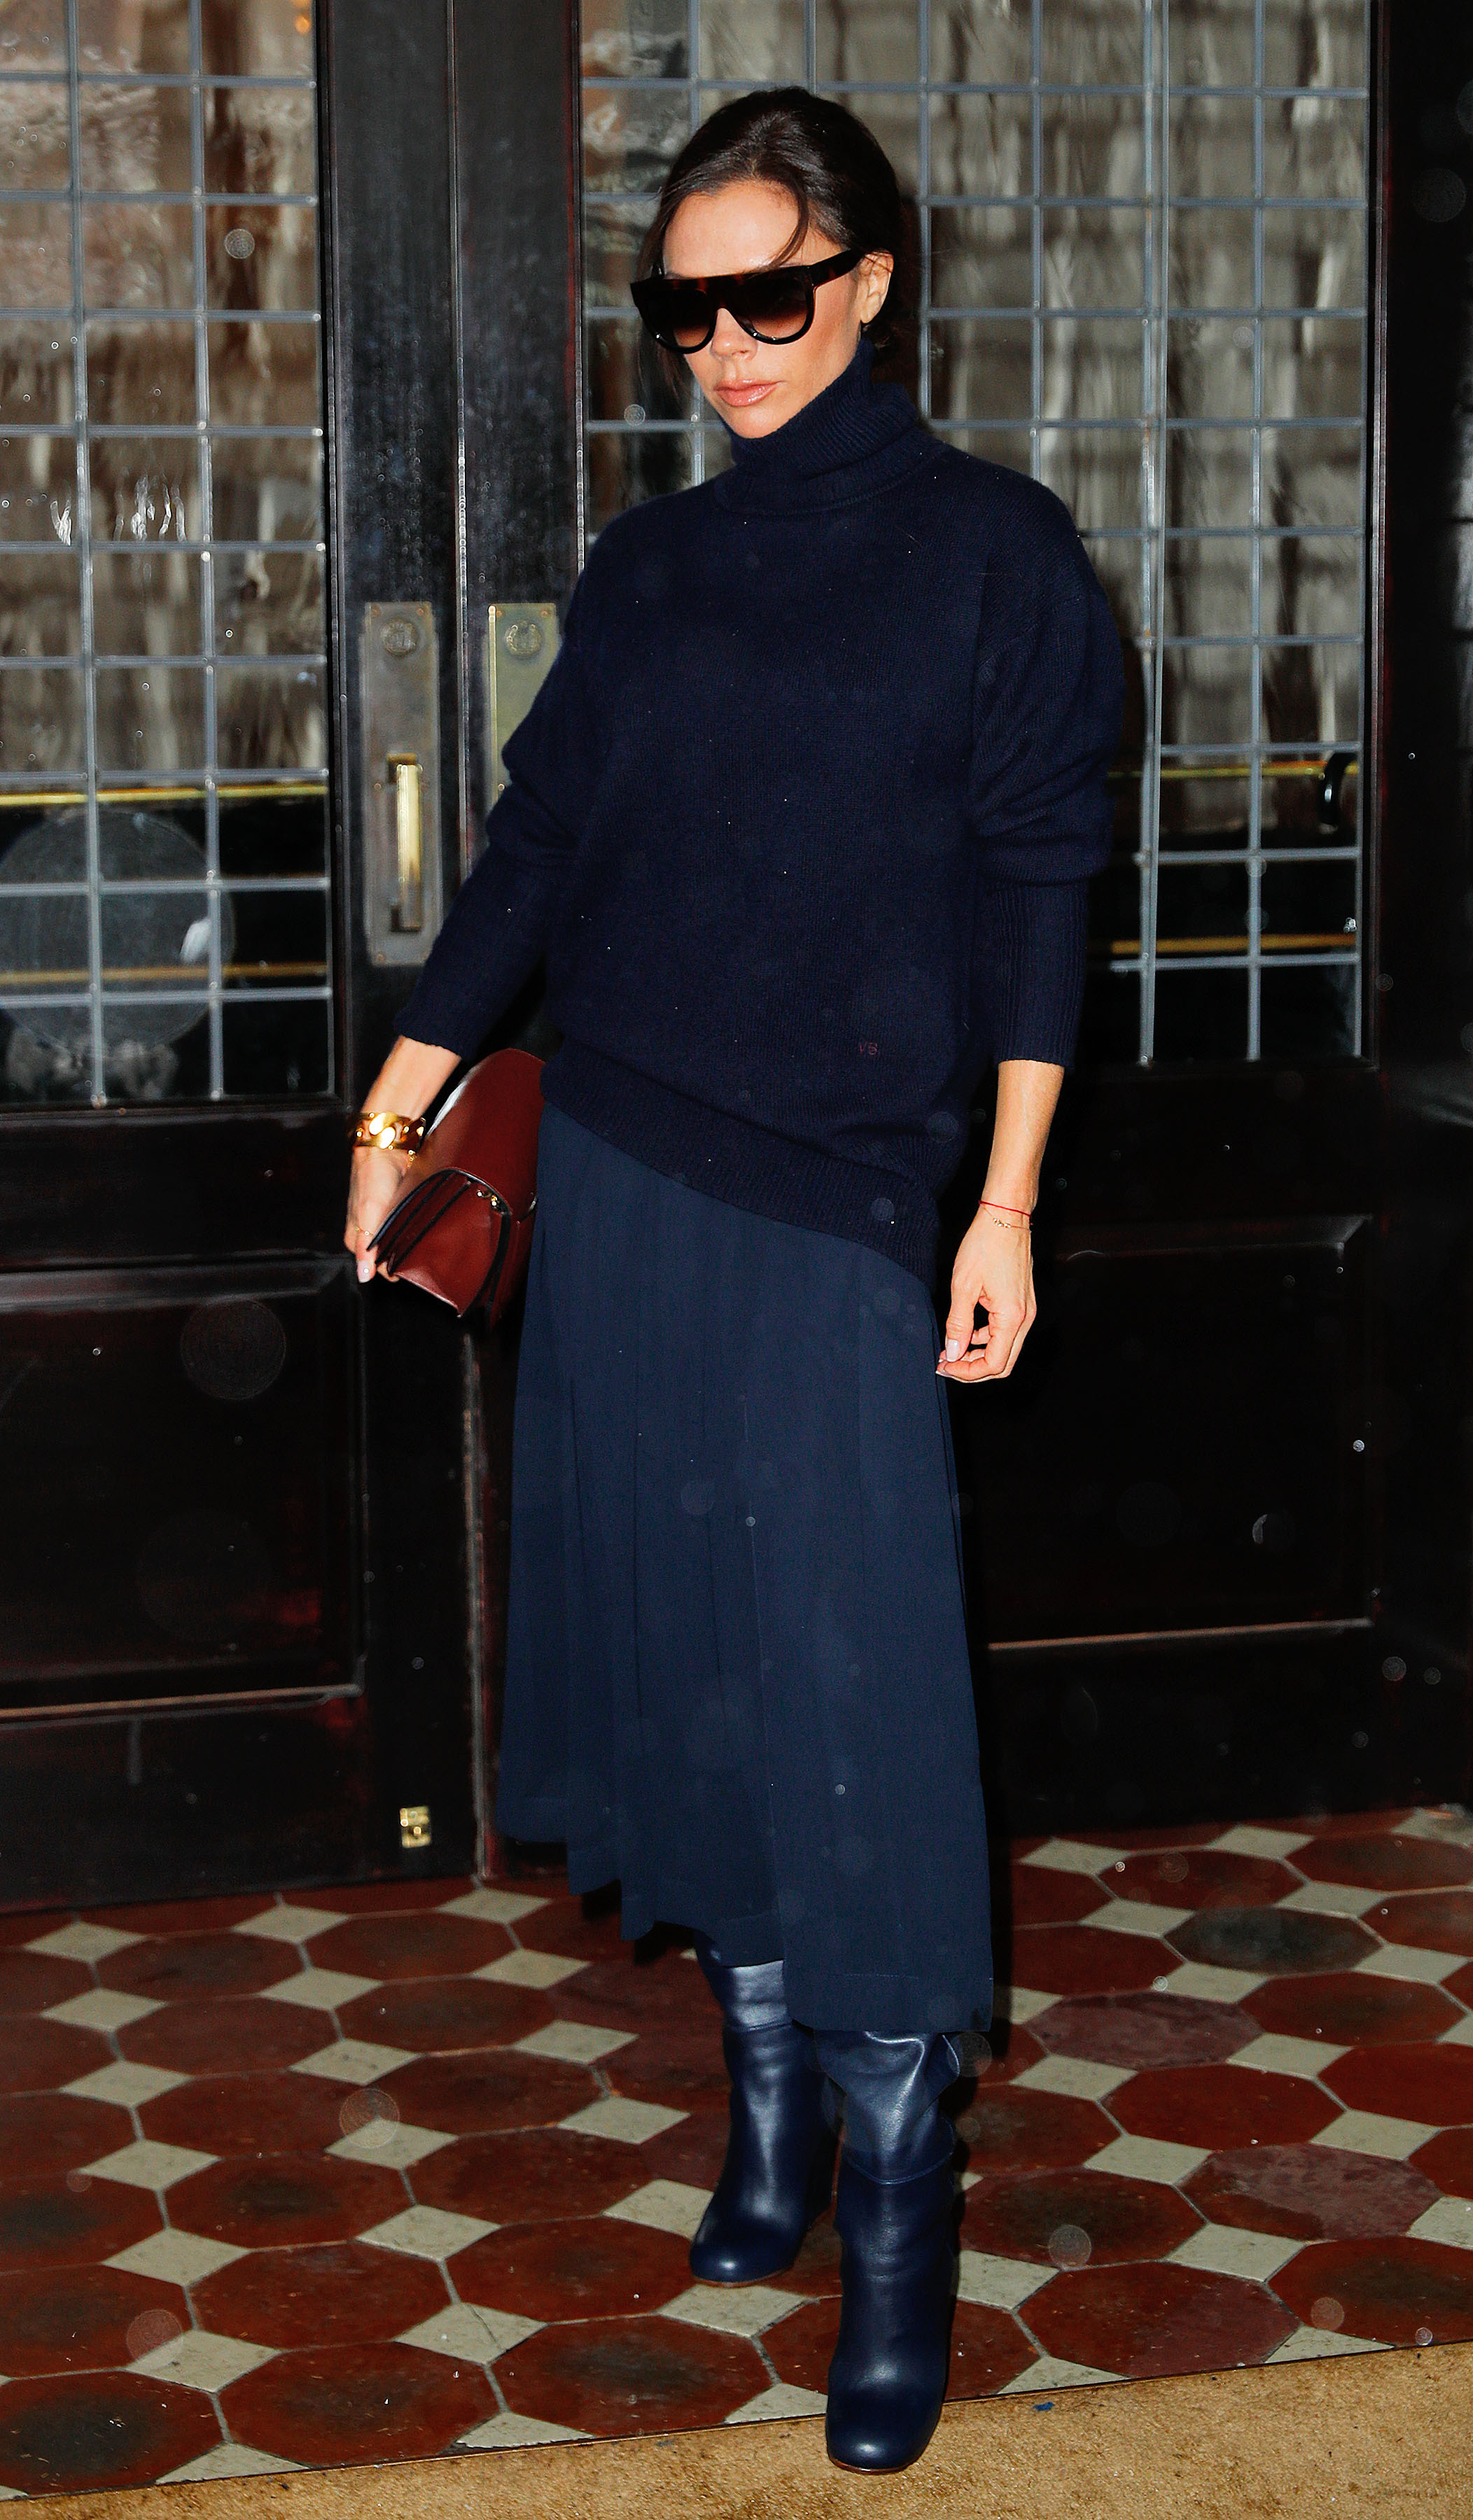 Victoria Beckham strikes a pose in another navy outfit when out in New York <P> Pictured: Victoria Beckham <B>Ref: SPL1461950  140317  </B><BR/> Picture by: Jackson Lee / Splash News<BR/> </P><P> <B>Splash News and Pictures</B><BR/> Los Angeles:310-821-2666<BR/> New York:212-619-2666<BR/> London:870-934-2666<BR/> <span id=